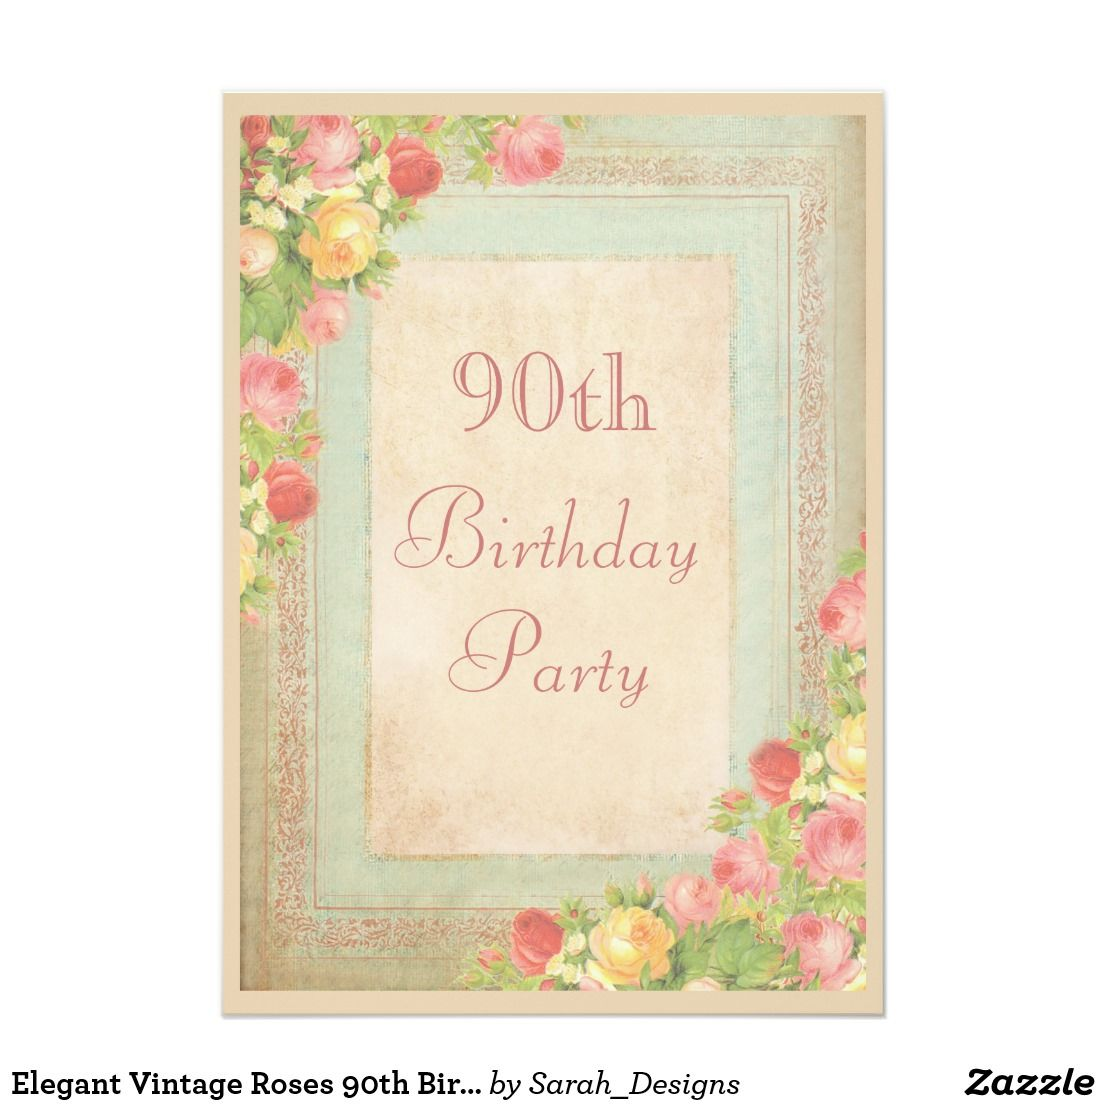 Elegant Vintage Roses 90th Birthday Party Card Personalized Custom Invitations For Women Beautiful Romantic Collage